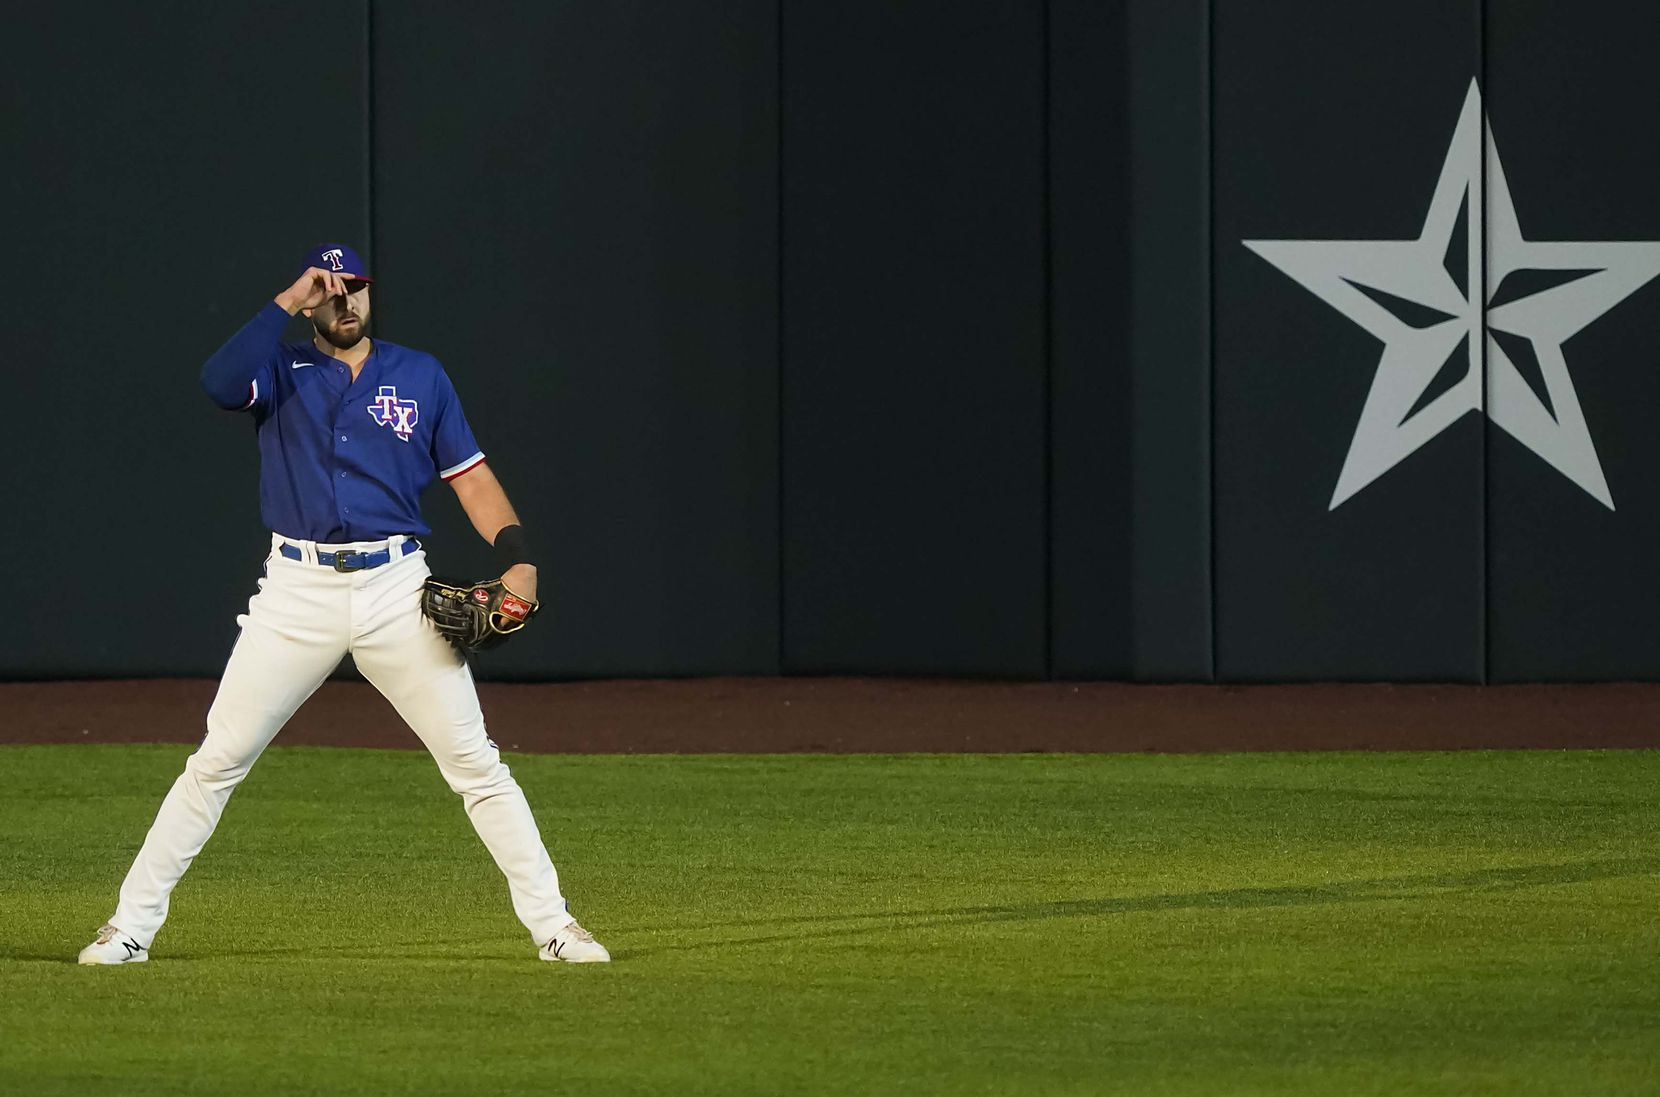 Texas Rangers outfielder Joey Gallo adjusts his cap as sunlight filters over right field during the second inning of an exhibition game against the Colorado Rockies at Globe Life Field on Wednesday, July 22, 2020.